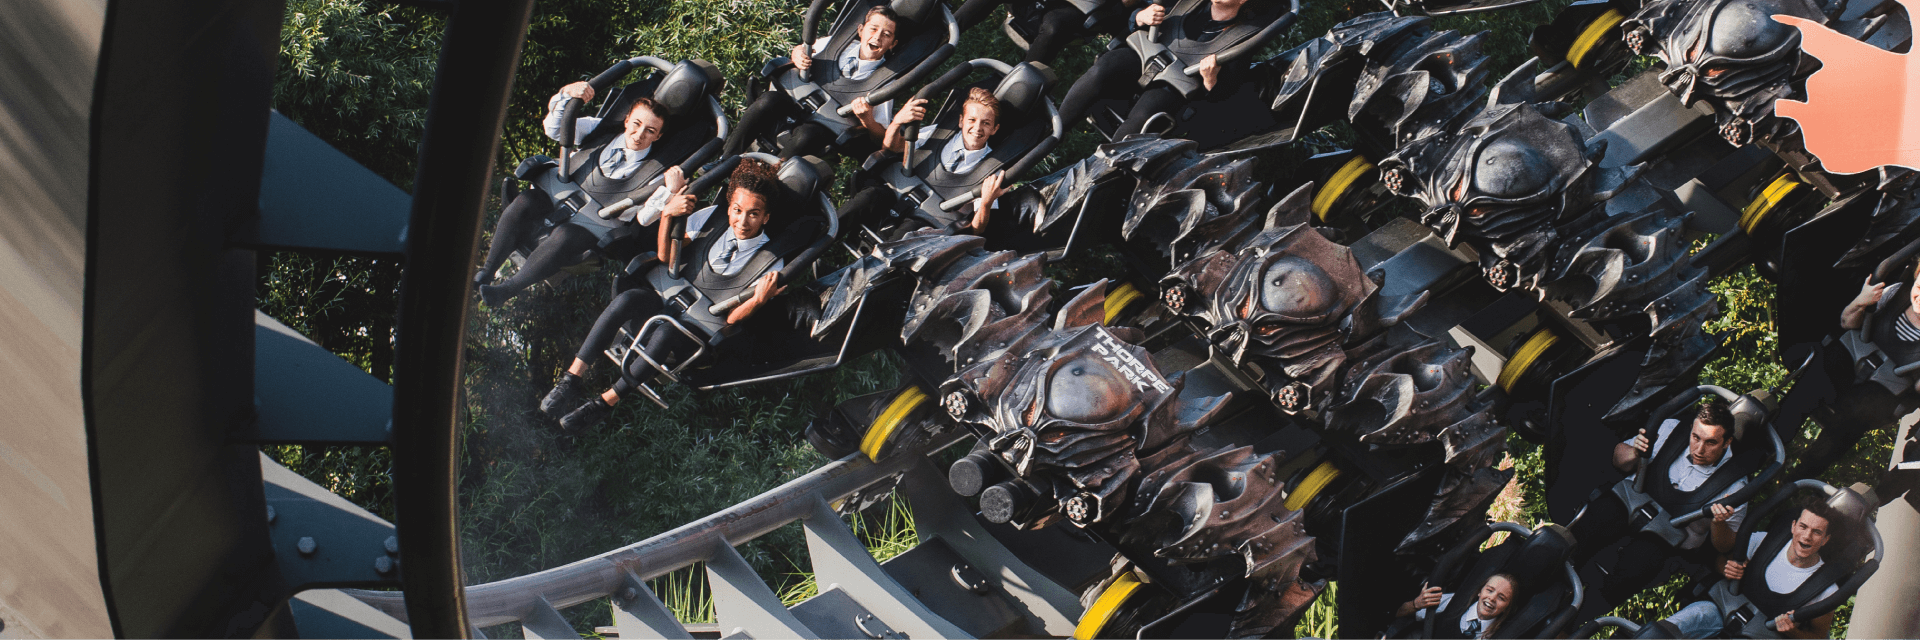 Students On The Swarm Rollercoaster